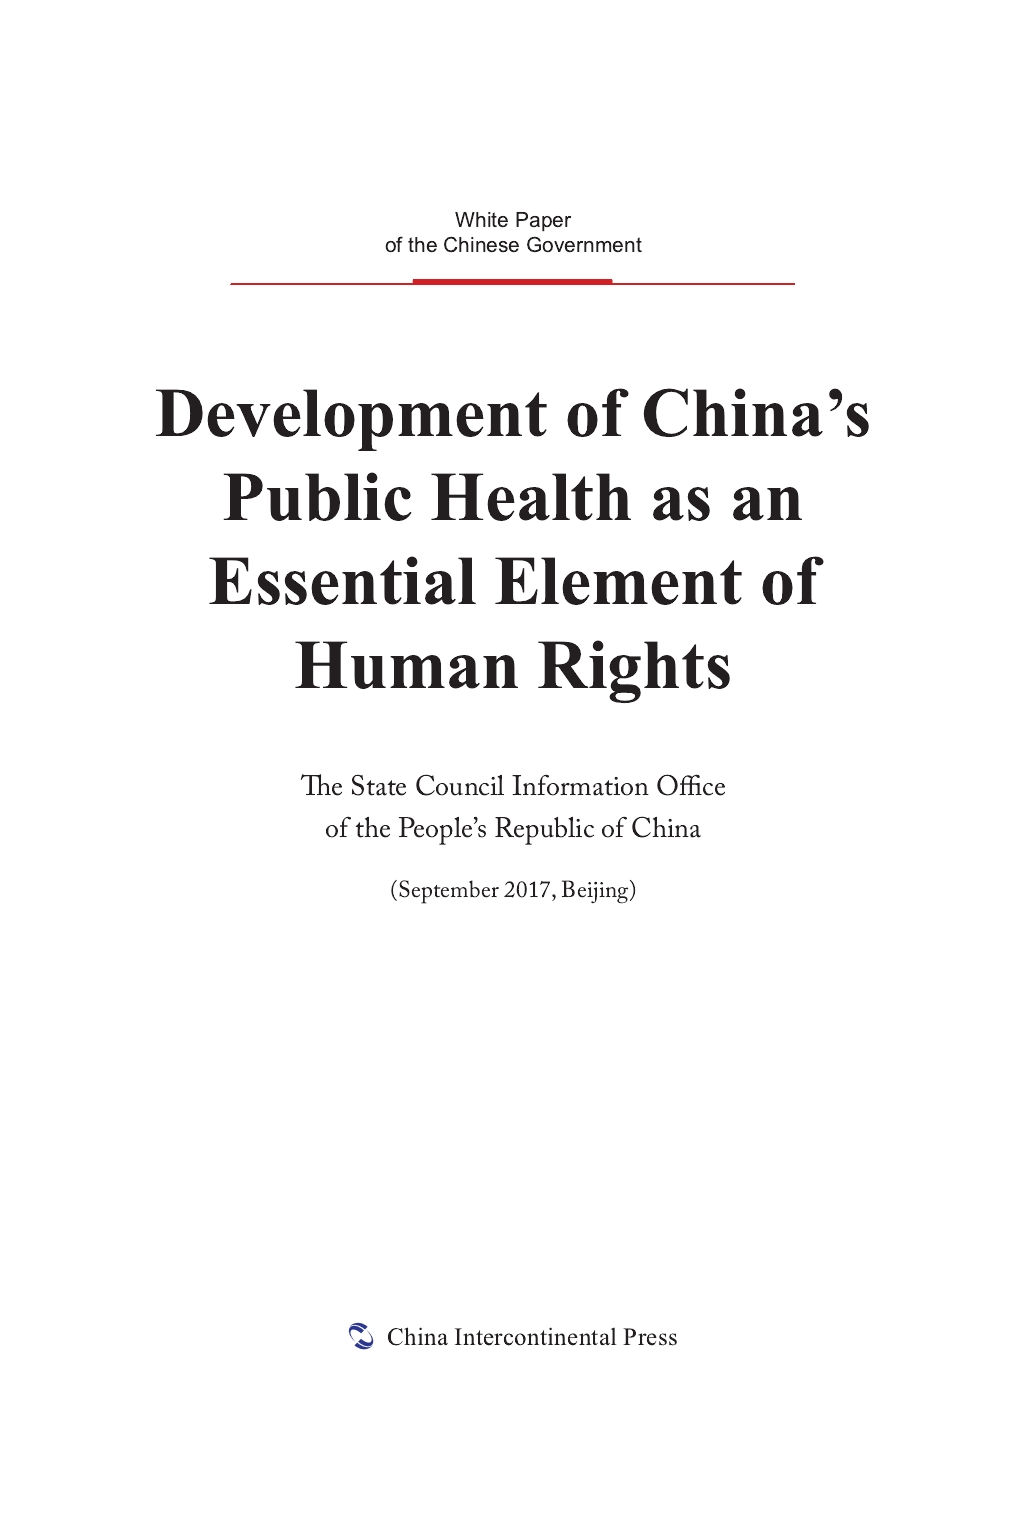 Development of China's Public Health as an Essential Element of Human Rights